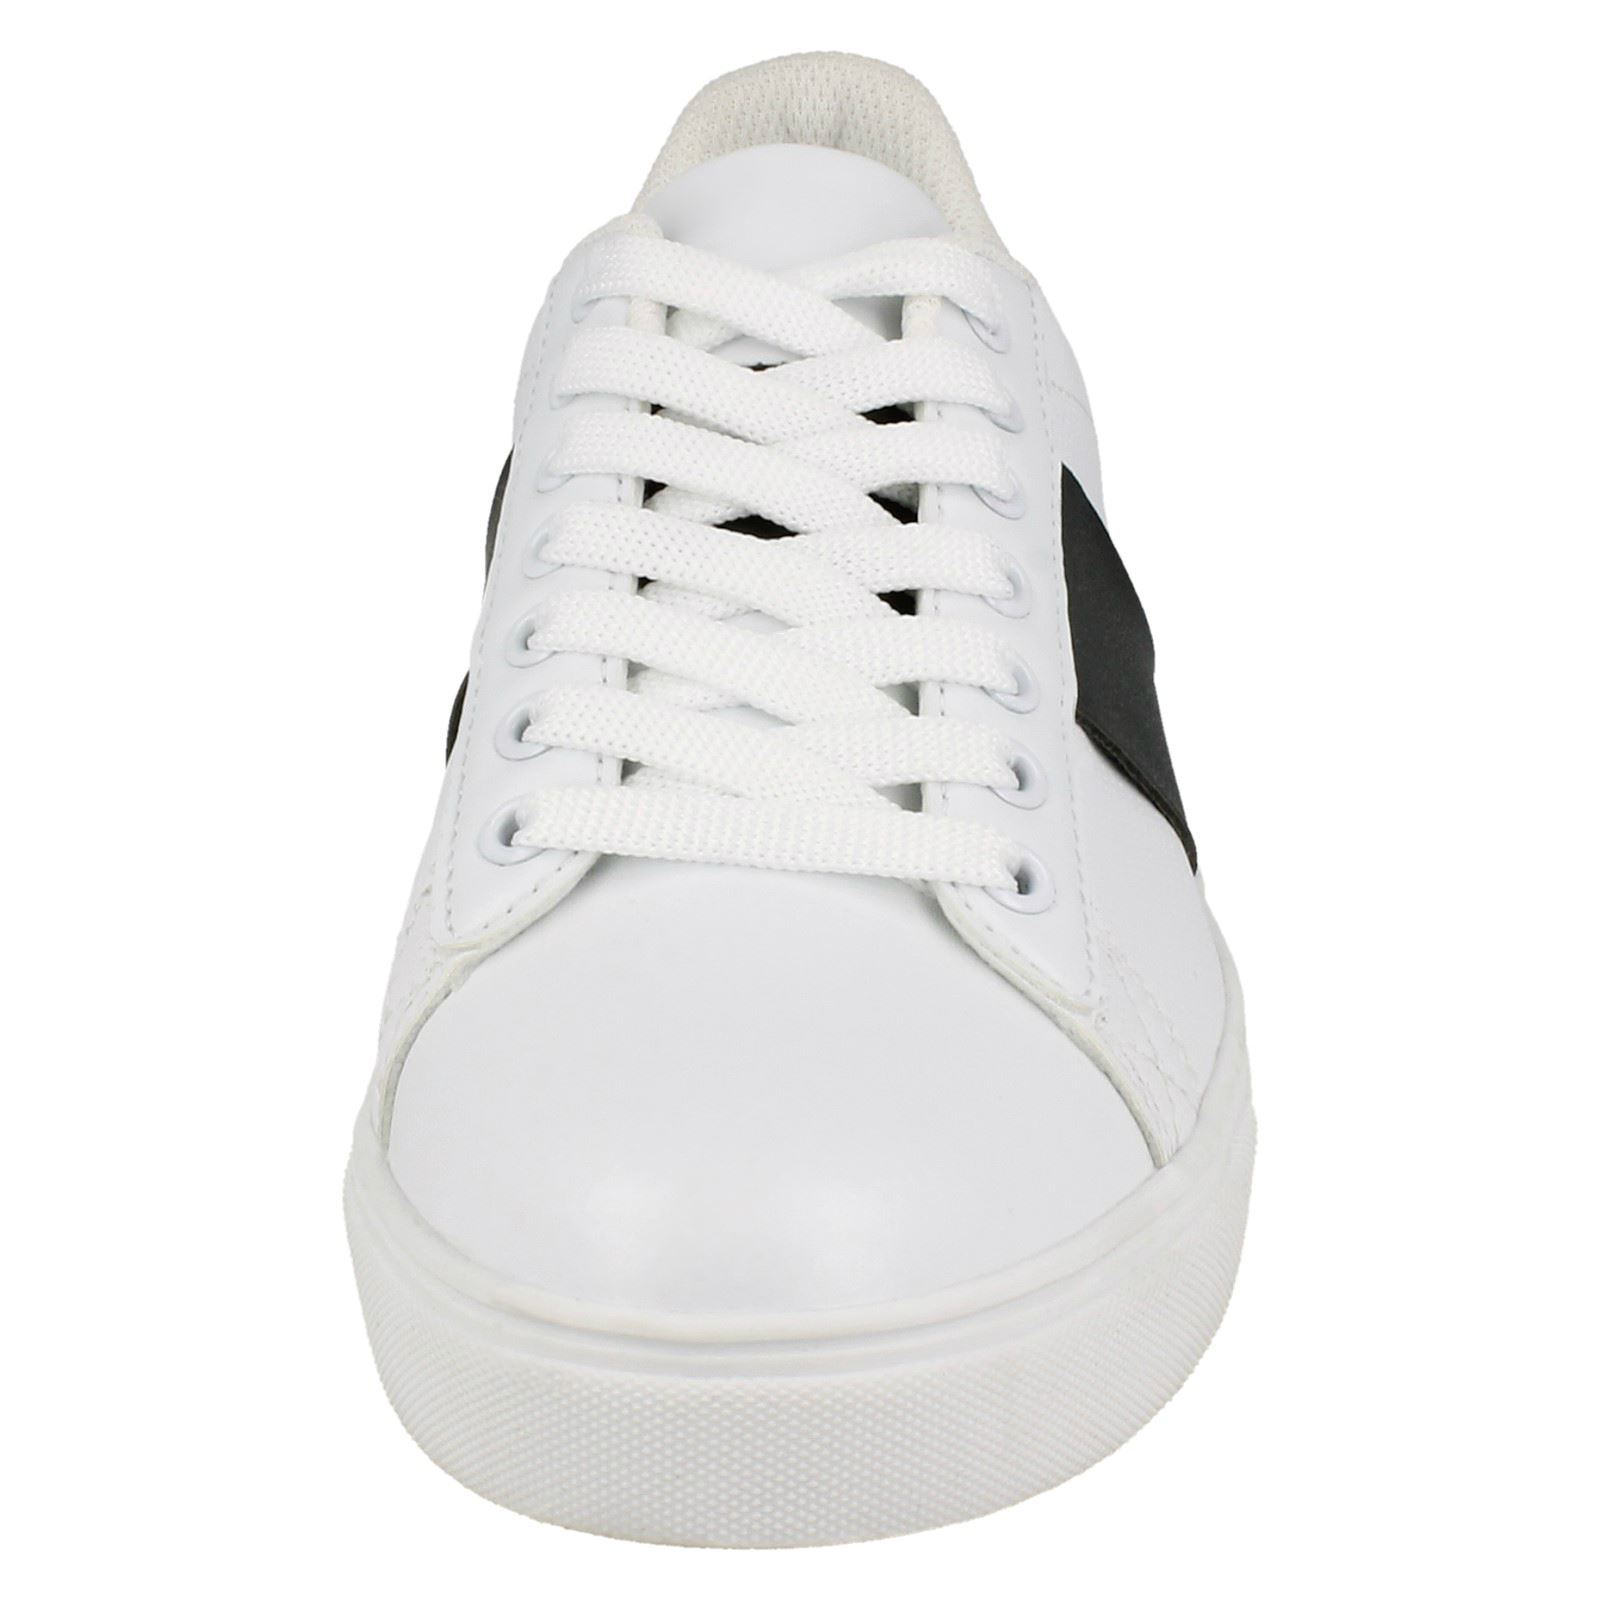 Spot On Womens/Ladies Lace Up Cemented Strip Trainers (KM550)